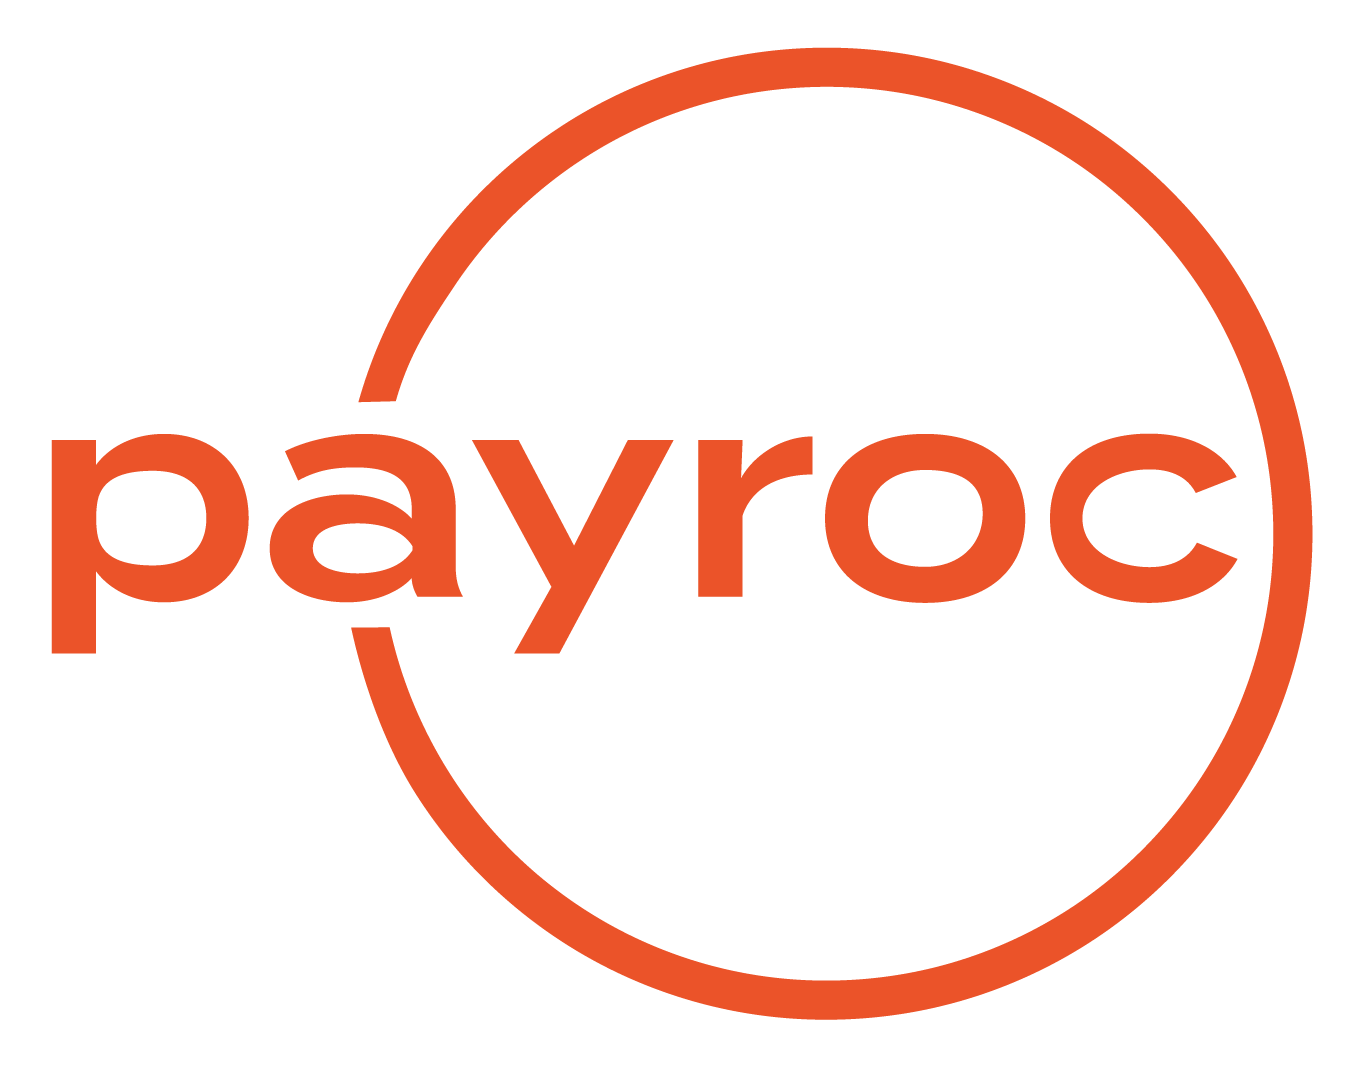 Payroc_LOGO_Orange